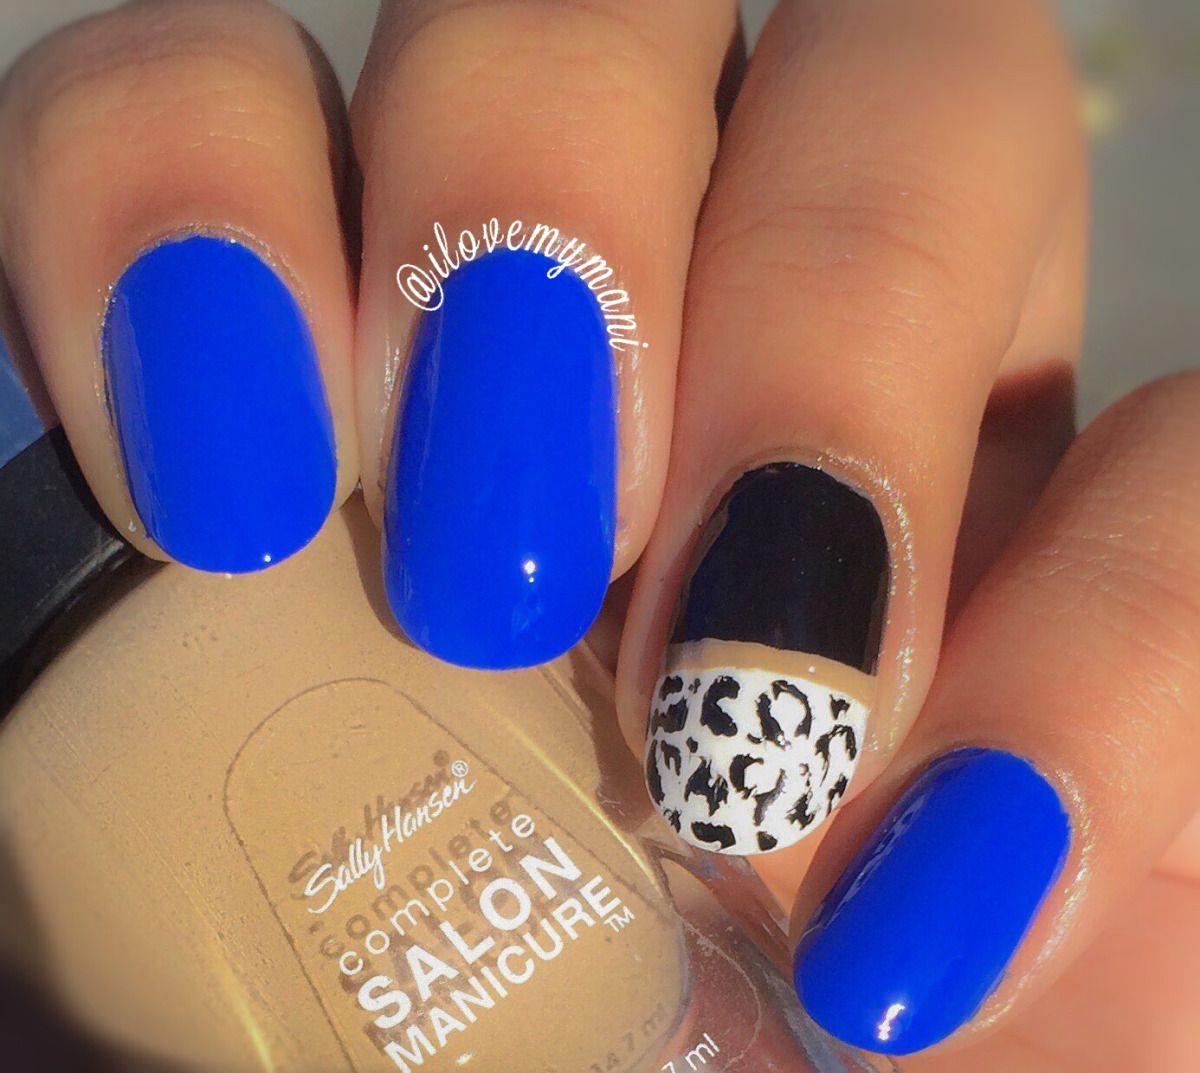 Absolutely loving Sinful Colors Endless Blue! Such a beautiful cobalt blue color with easy application. For just under $2, the affordability is amazing! For my thumb and ring finger I used Sally Ha...  #nails #nailpolish #manicure #beauty #beautiful #chic #sophisticated #lifestyle #trendy #sallyhansen #thanksgiving #girlythings